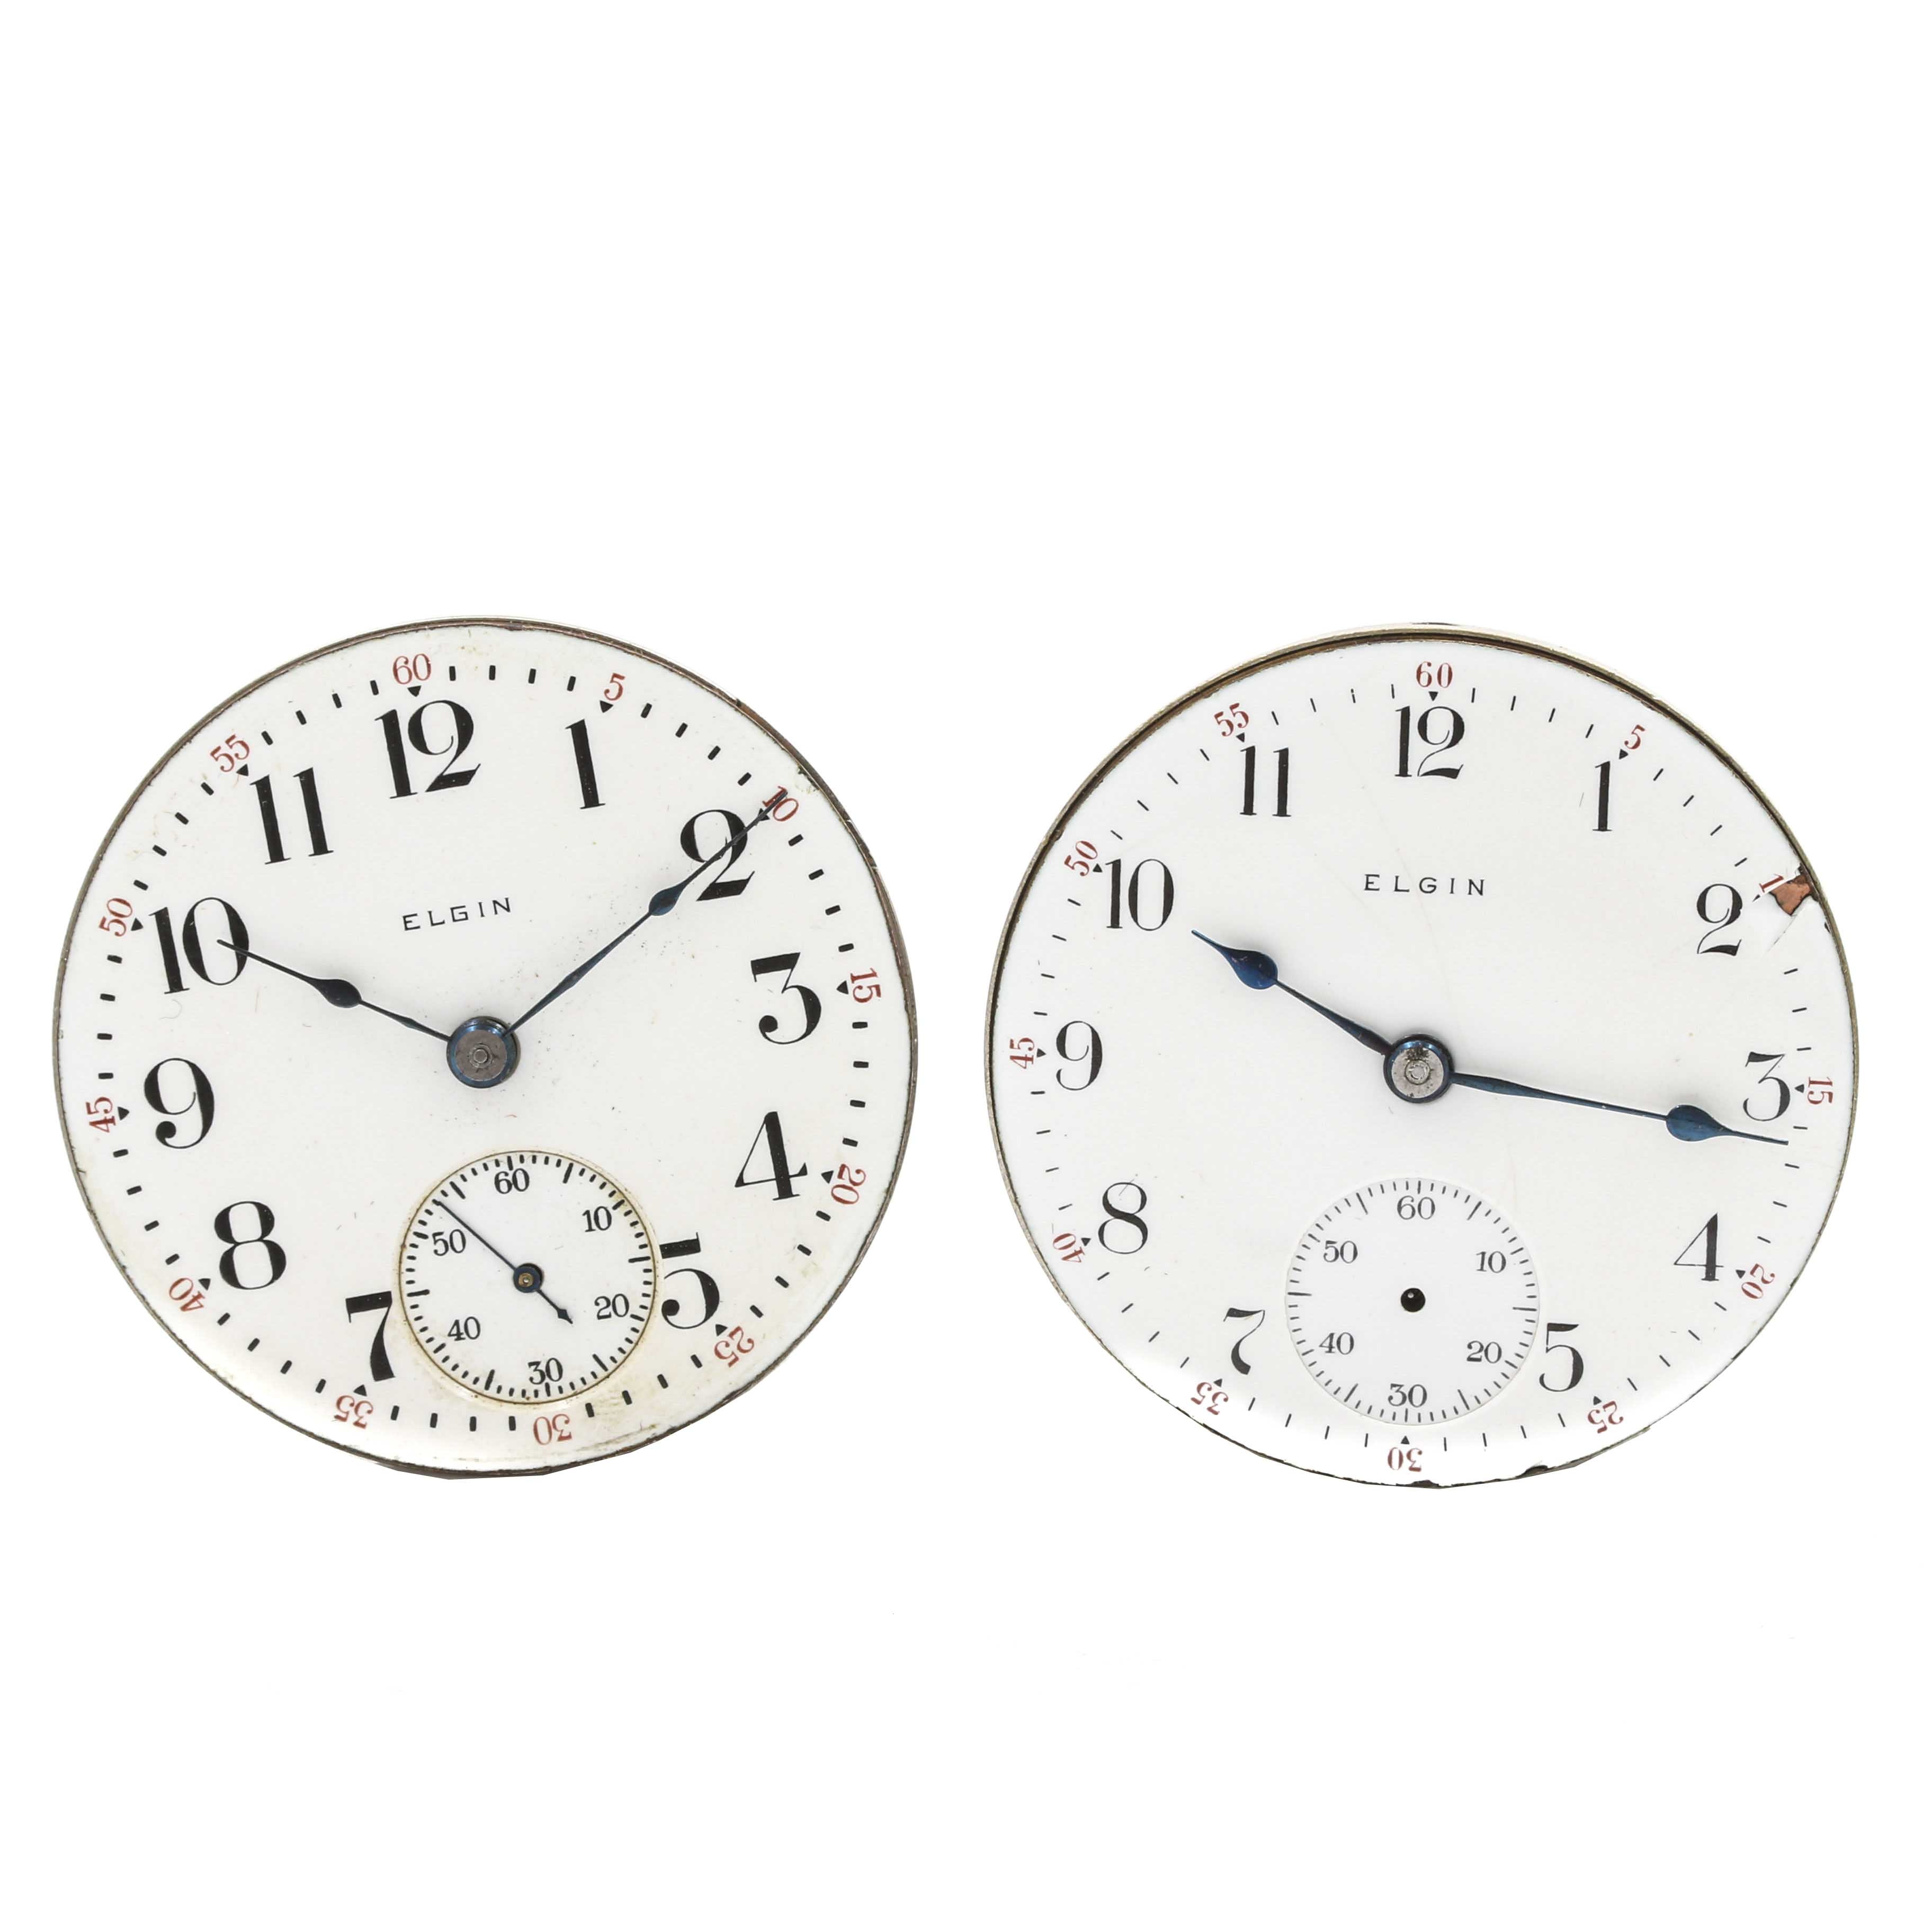 Antique Elgin Pocket Watch Movements With Dials and Hands